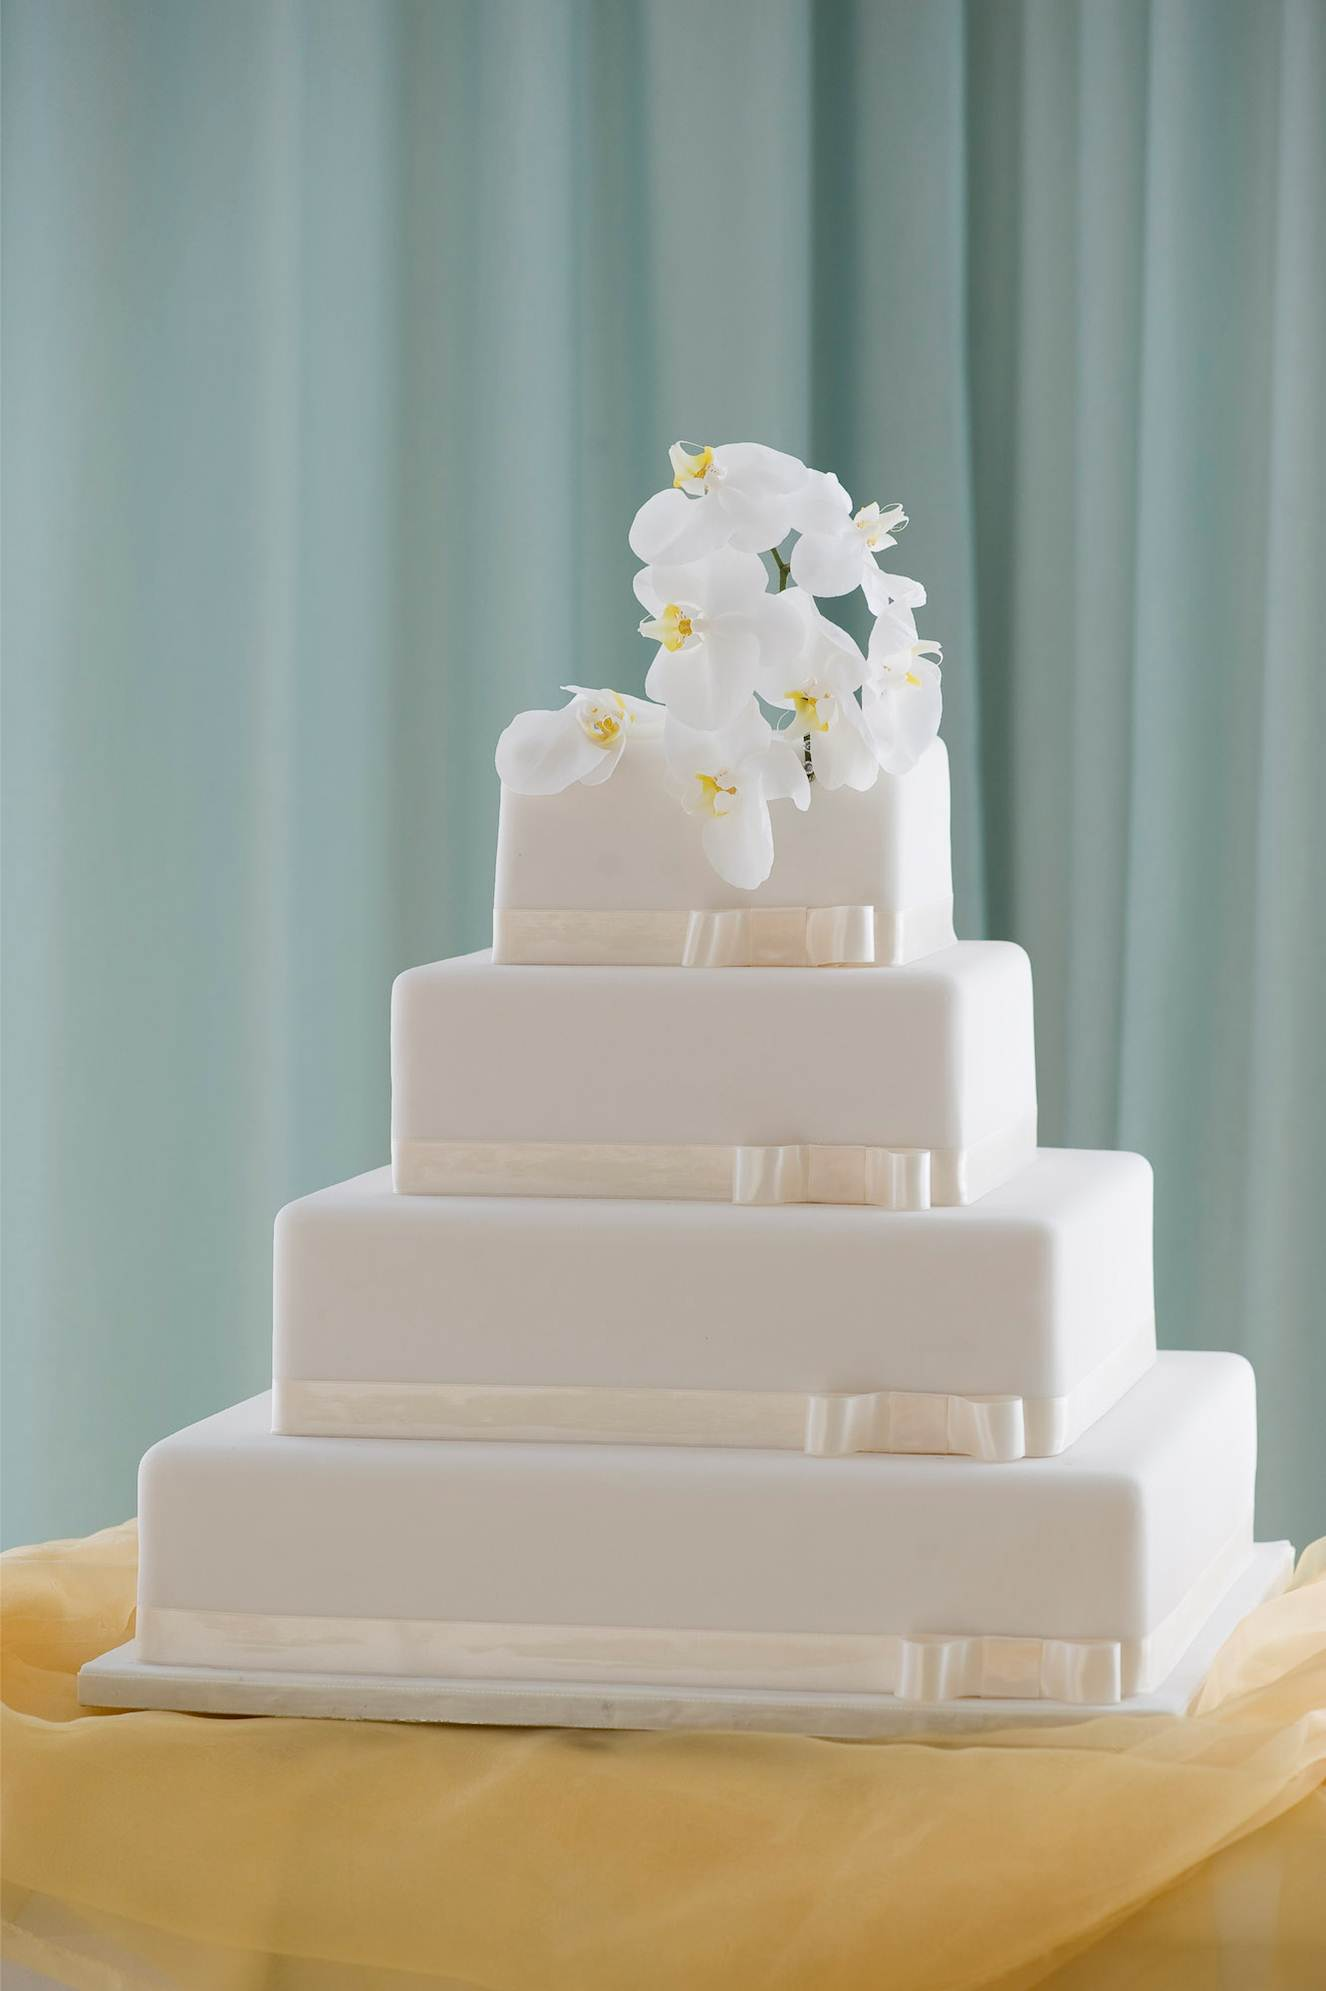 wedding cakes Jan 01 2013 13 05 59 Picture Gallery